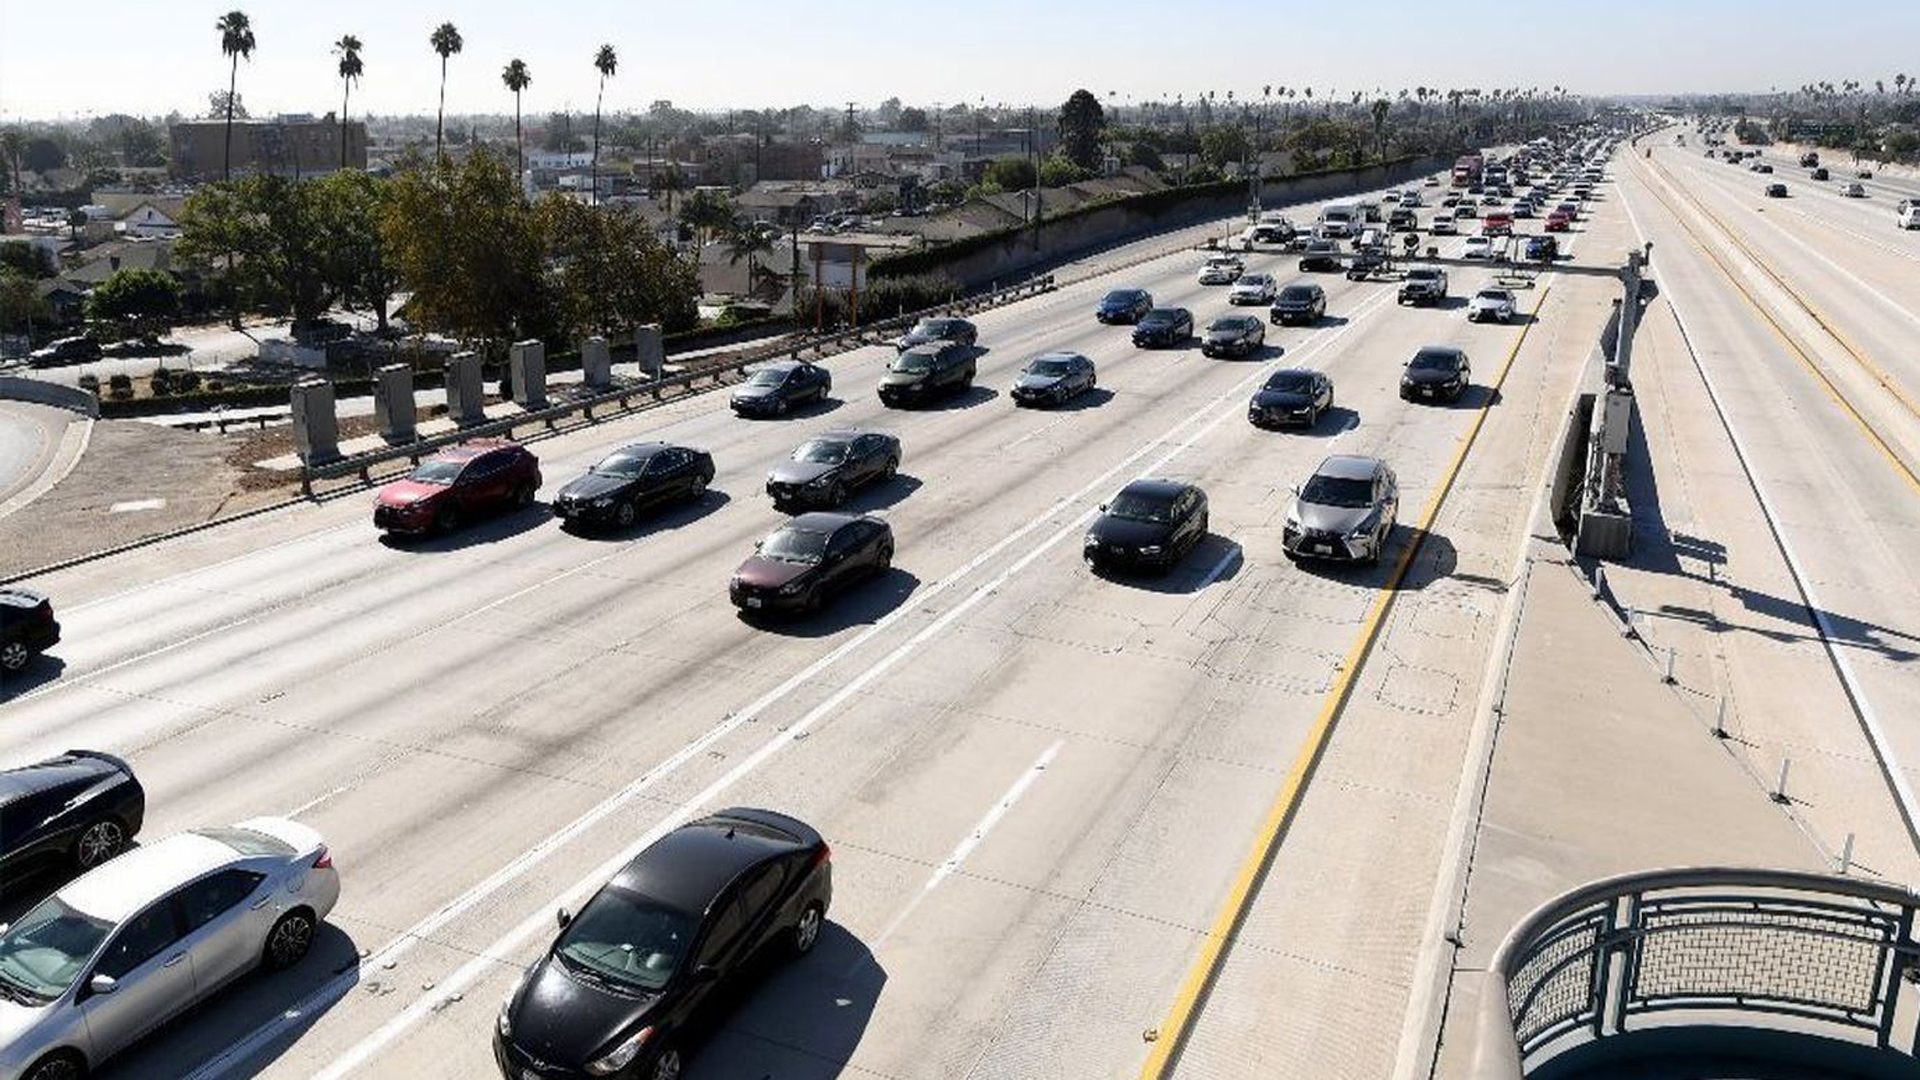 Traffic on the 110 Freeway in Los Angeles is seen in this file photo from September 2018. (Credit: Wally Skalij / Los Angeles Times)